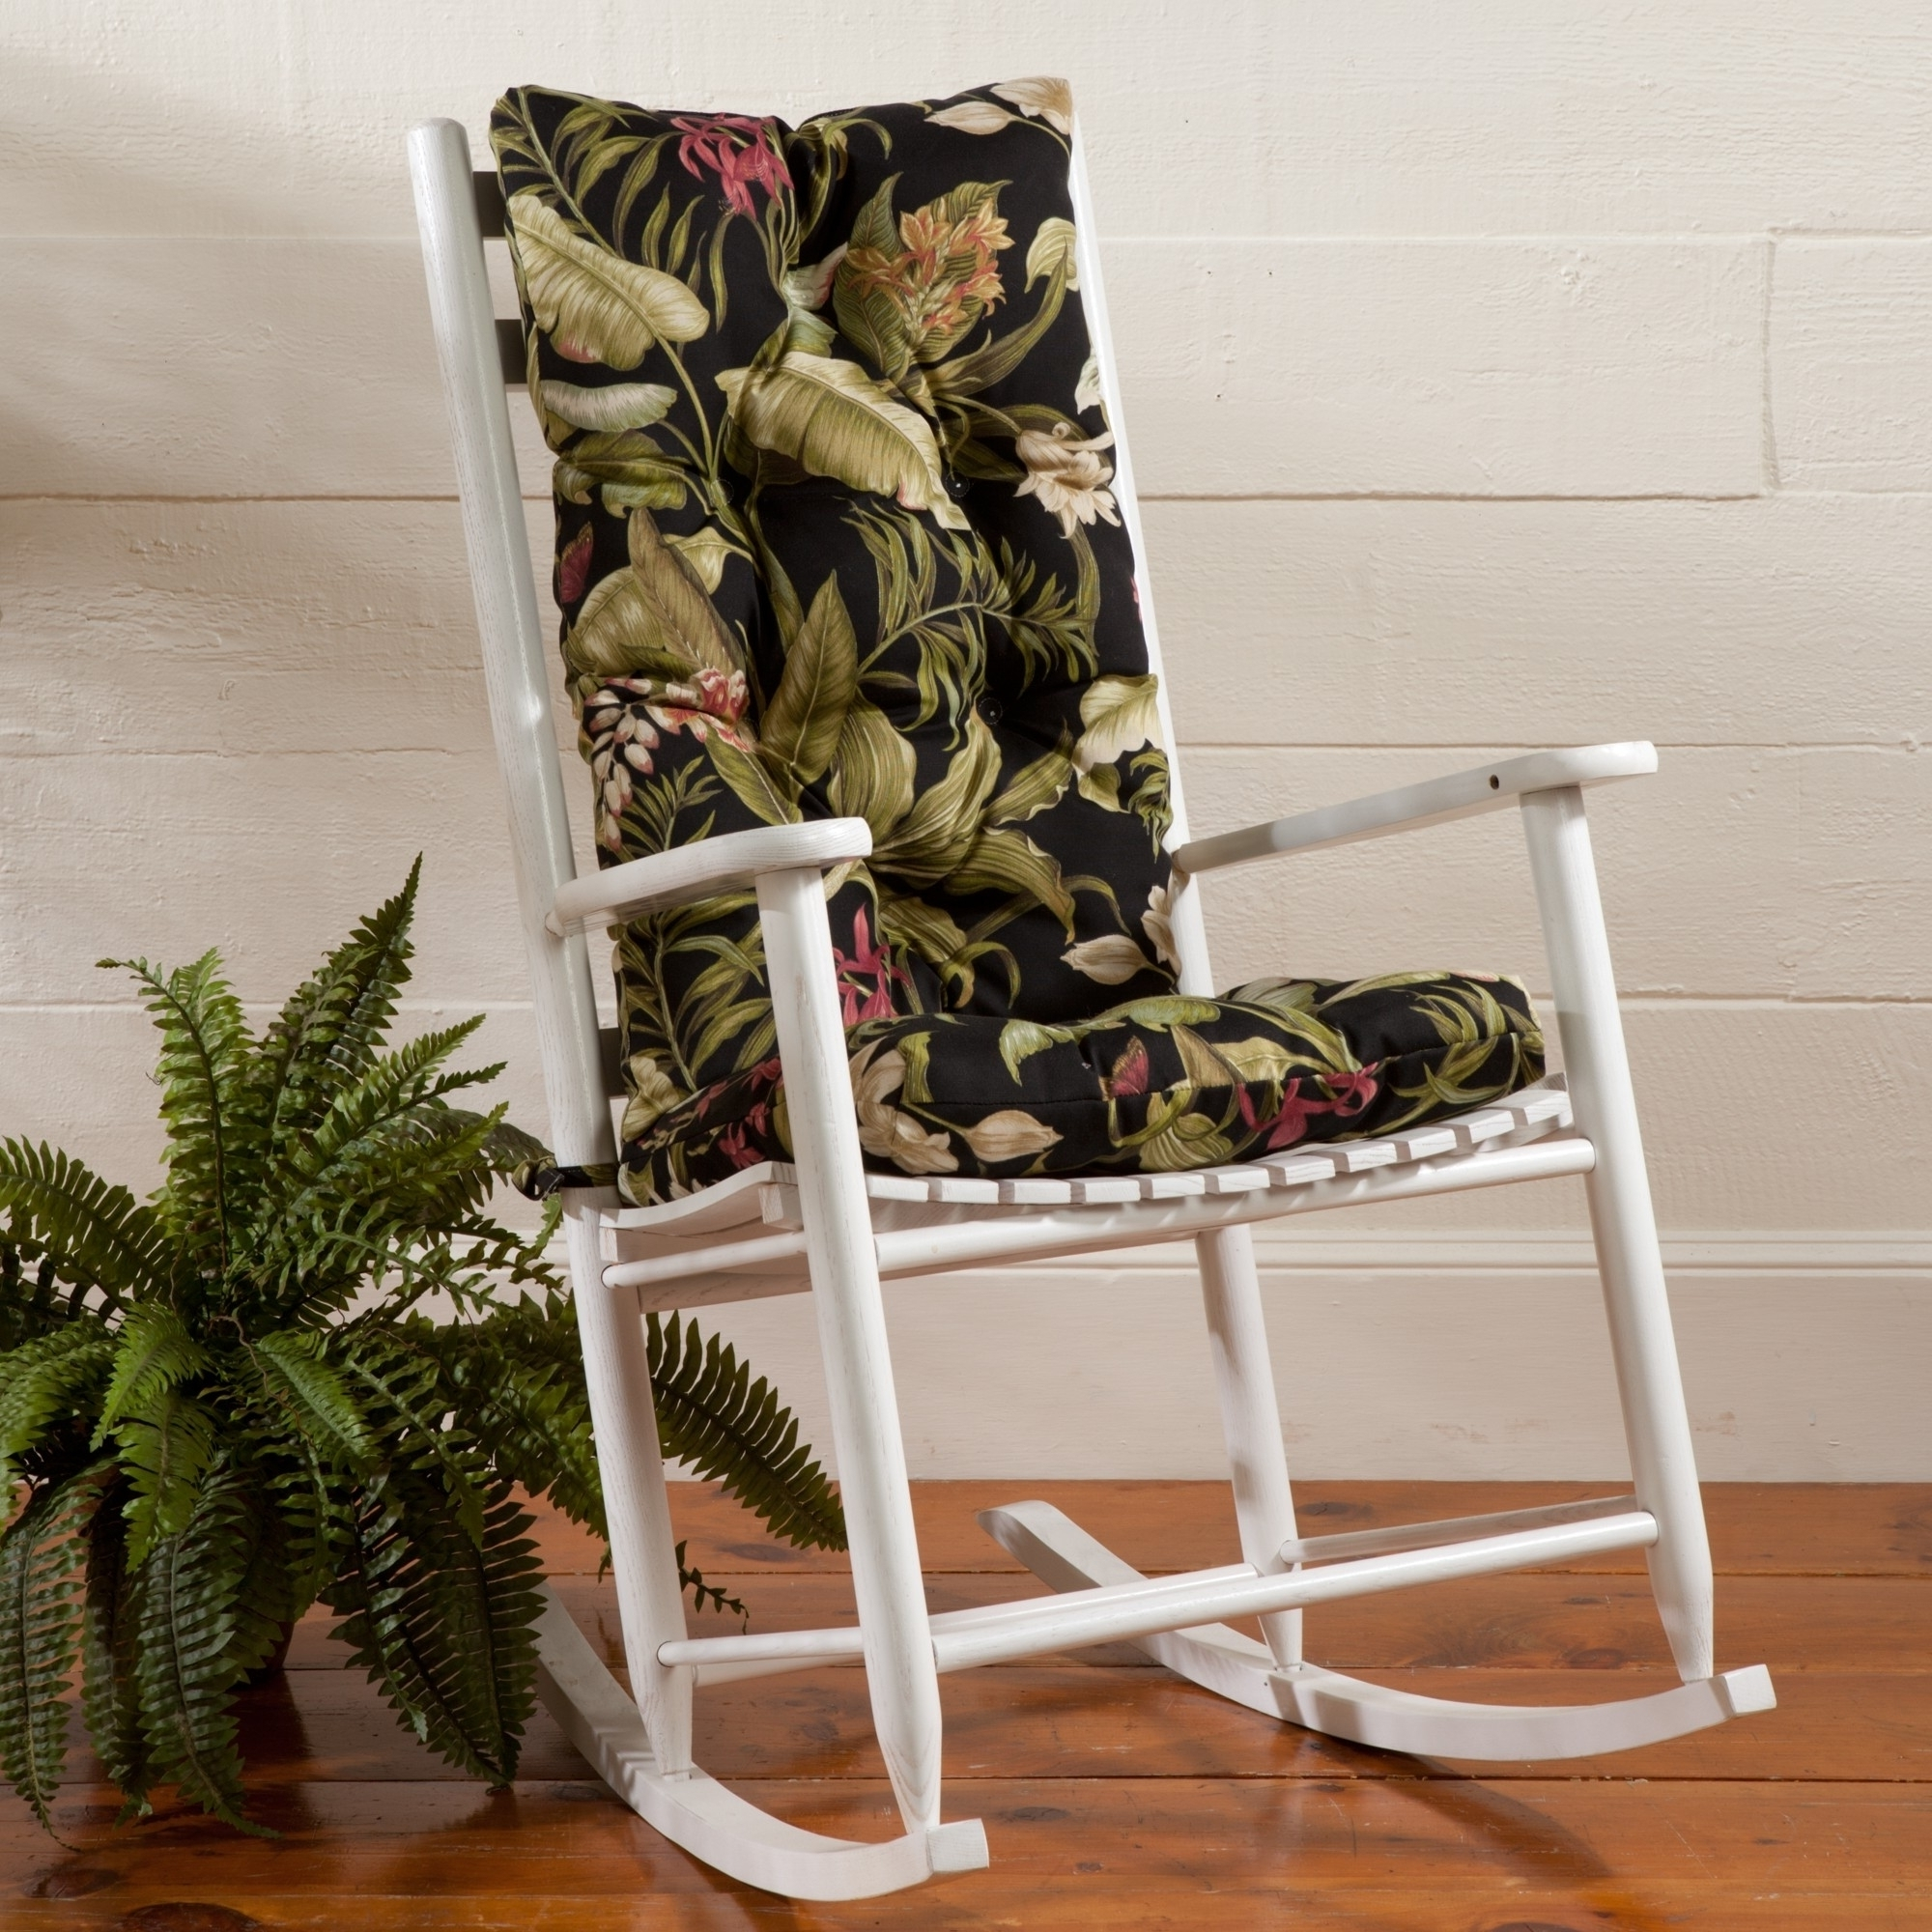 Most Current Patio Rocking Chairs With Cushions In Images Of Outdoor Rocking Chair Cushions All Can Download All (View 8 of 20)